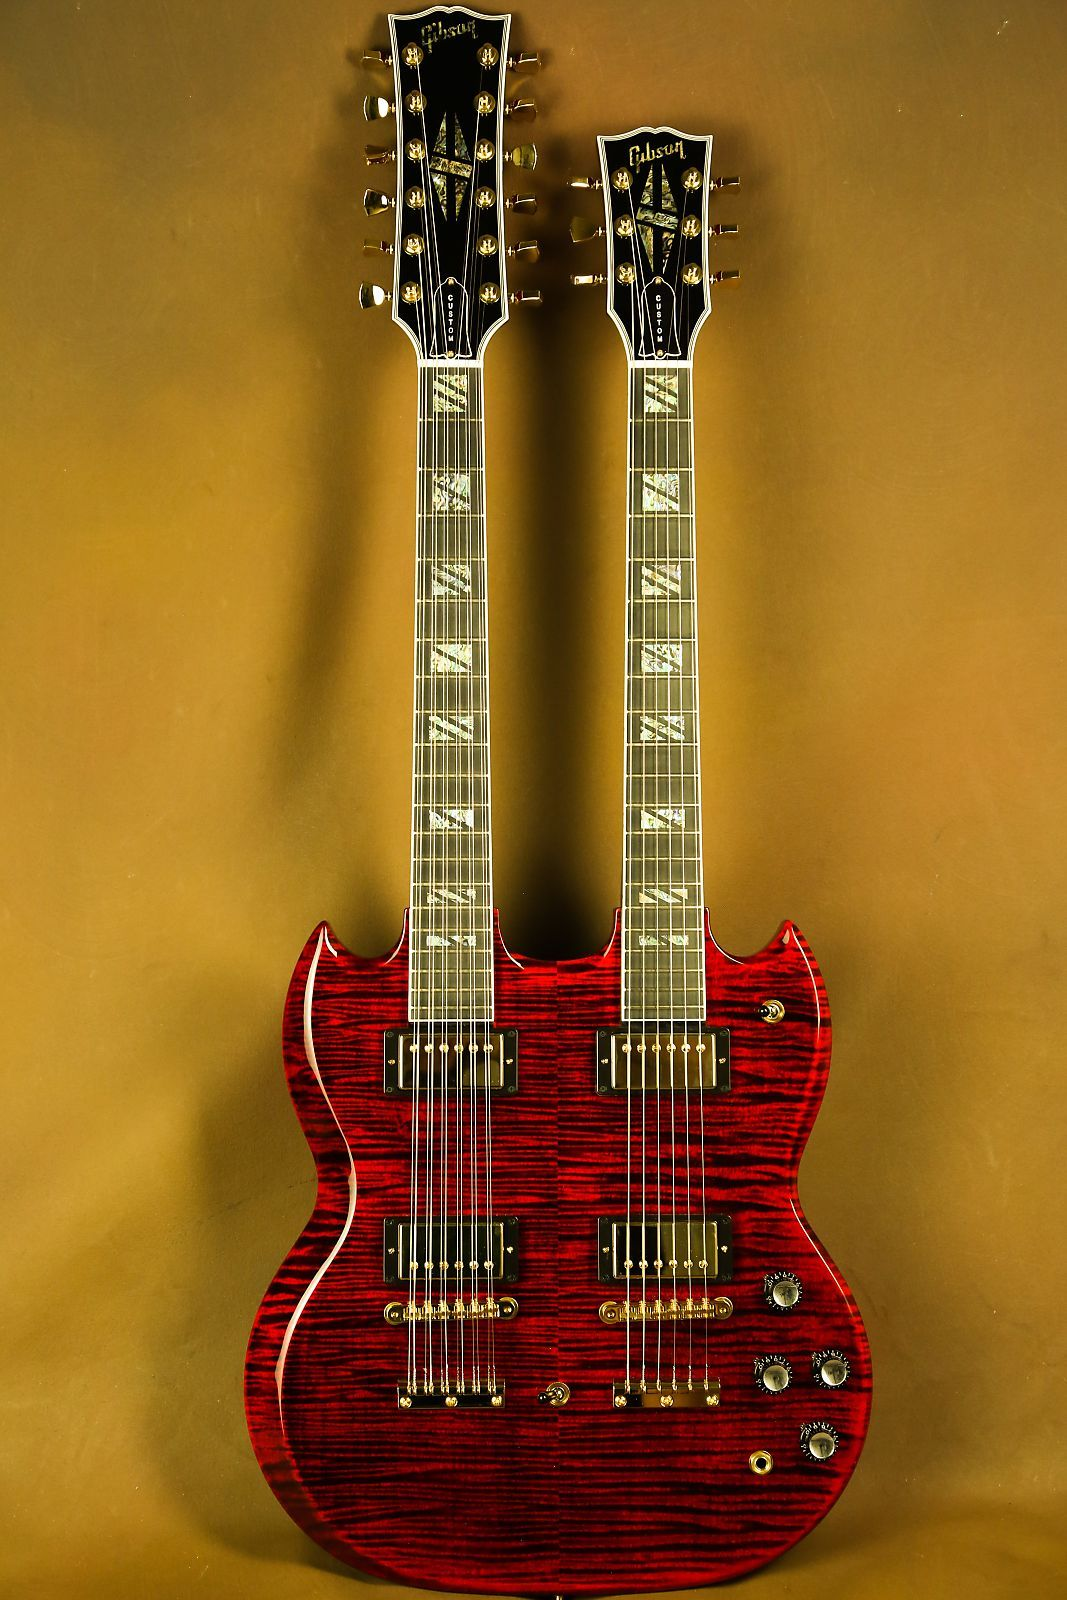 gibson eds 1275 wiring diagram honeywell rth9580wf youtube here is one of the coolest guitars ever